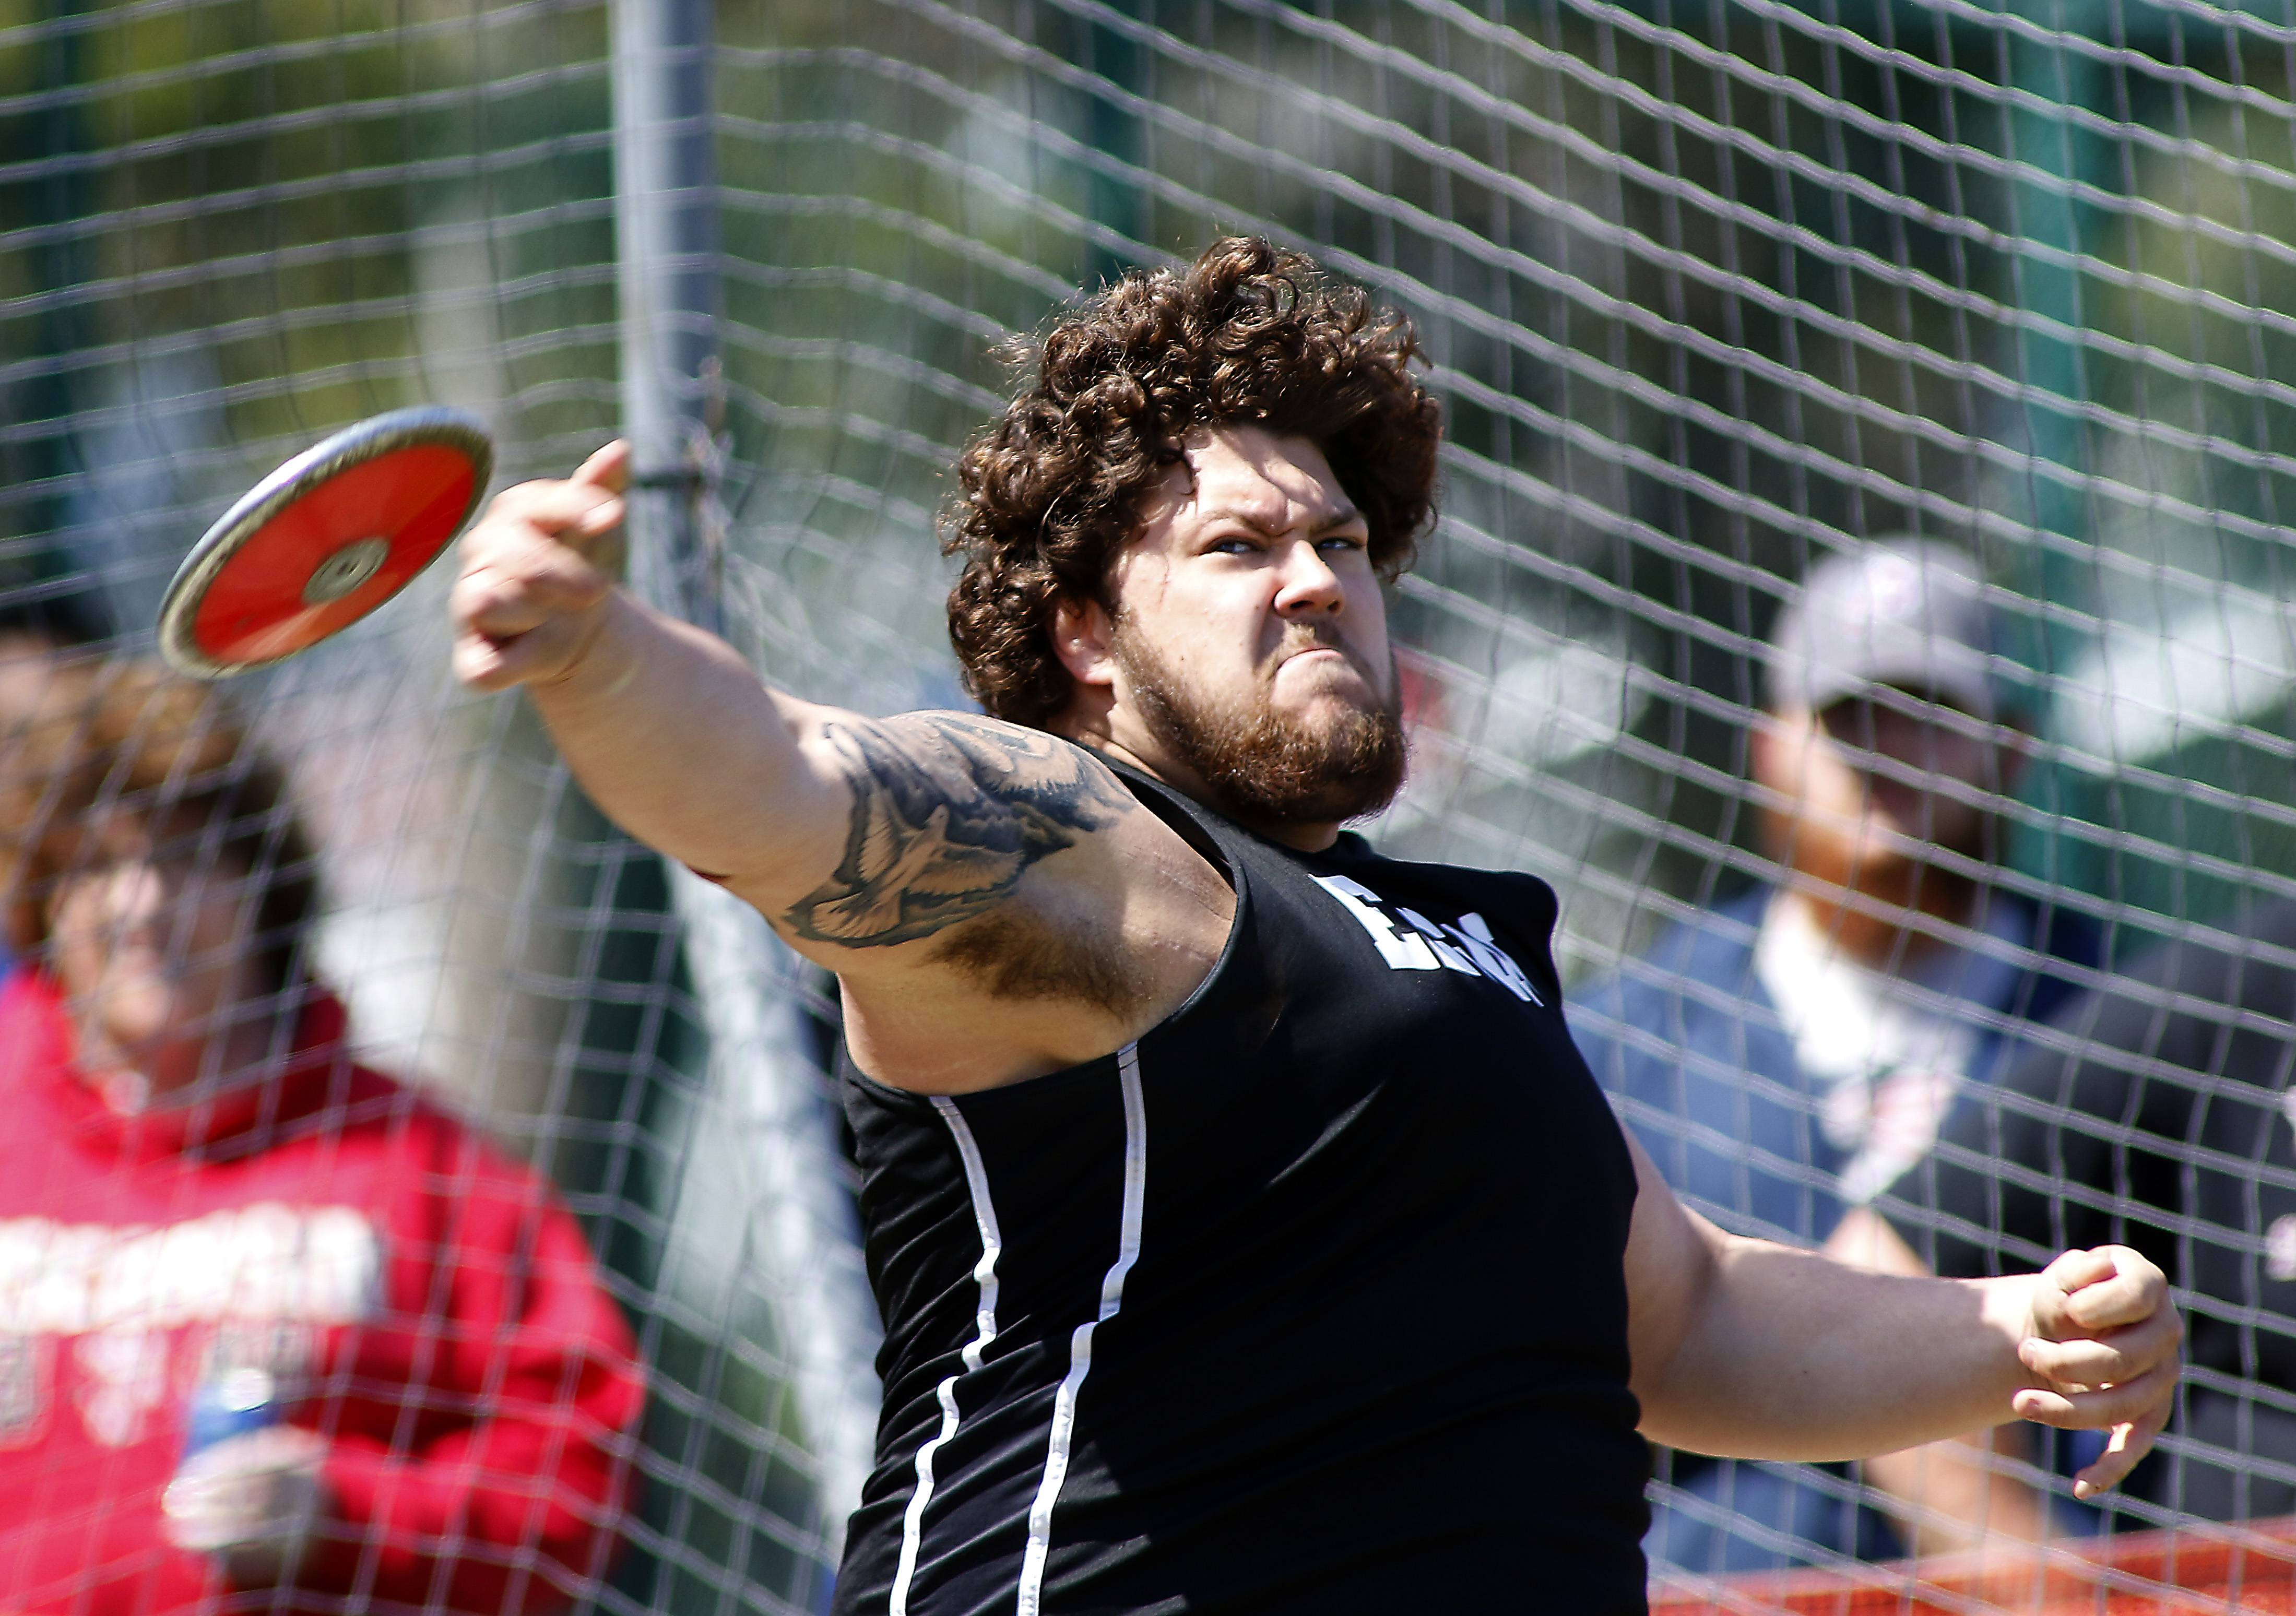 Fernando Vargas of Elgin throws the discus Saturday during the 45th Annual Peterson Prep Invitational at Kaneland High School in Maple Park.